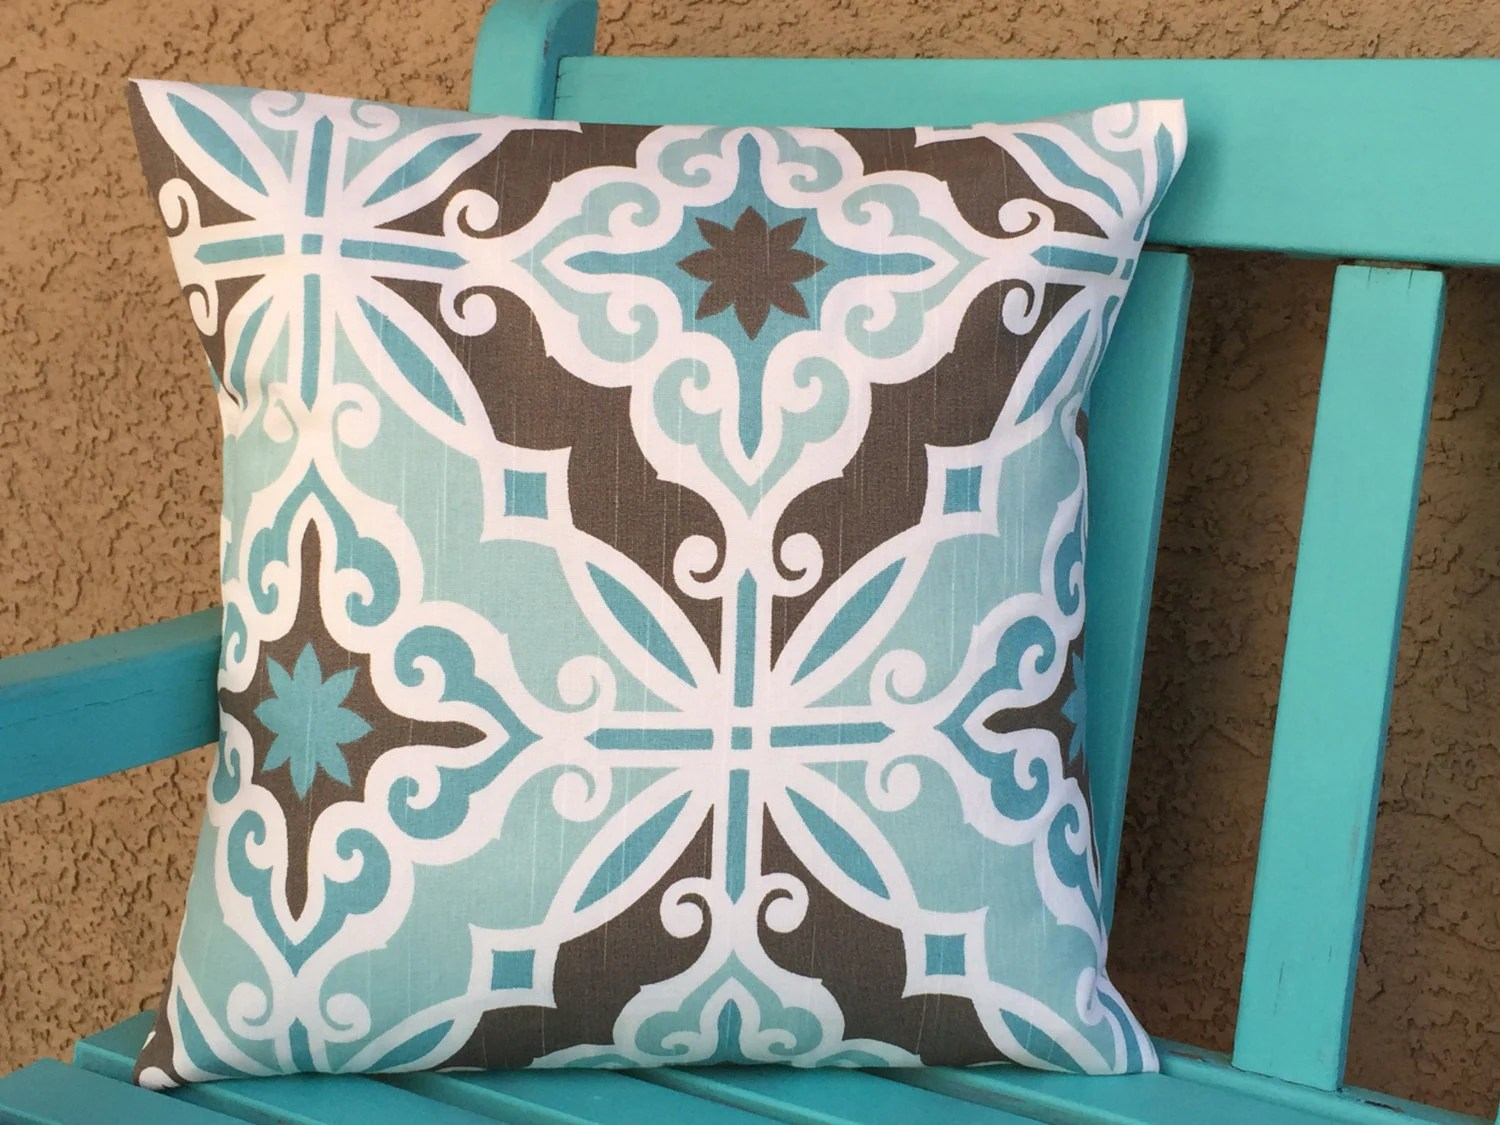 26x26 Euro Sham Pillow Cover 26x26 Pillow Cover by HomeMakeOver